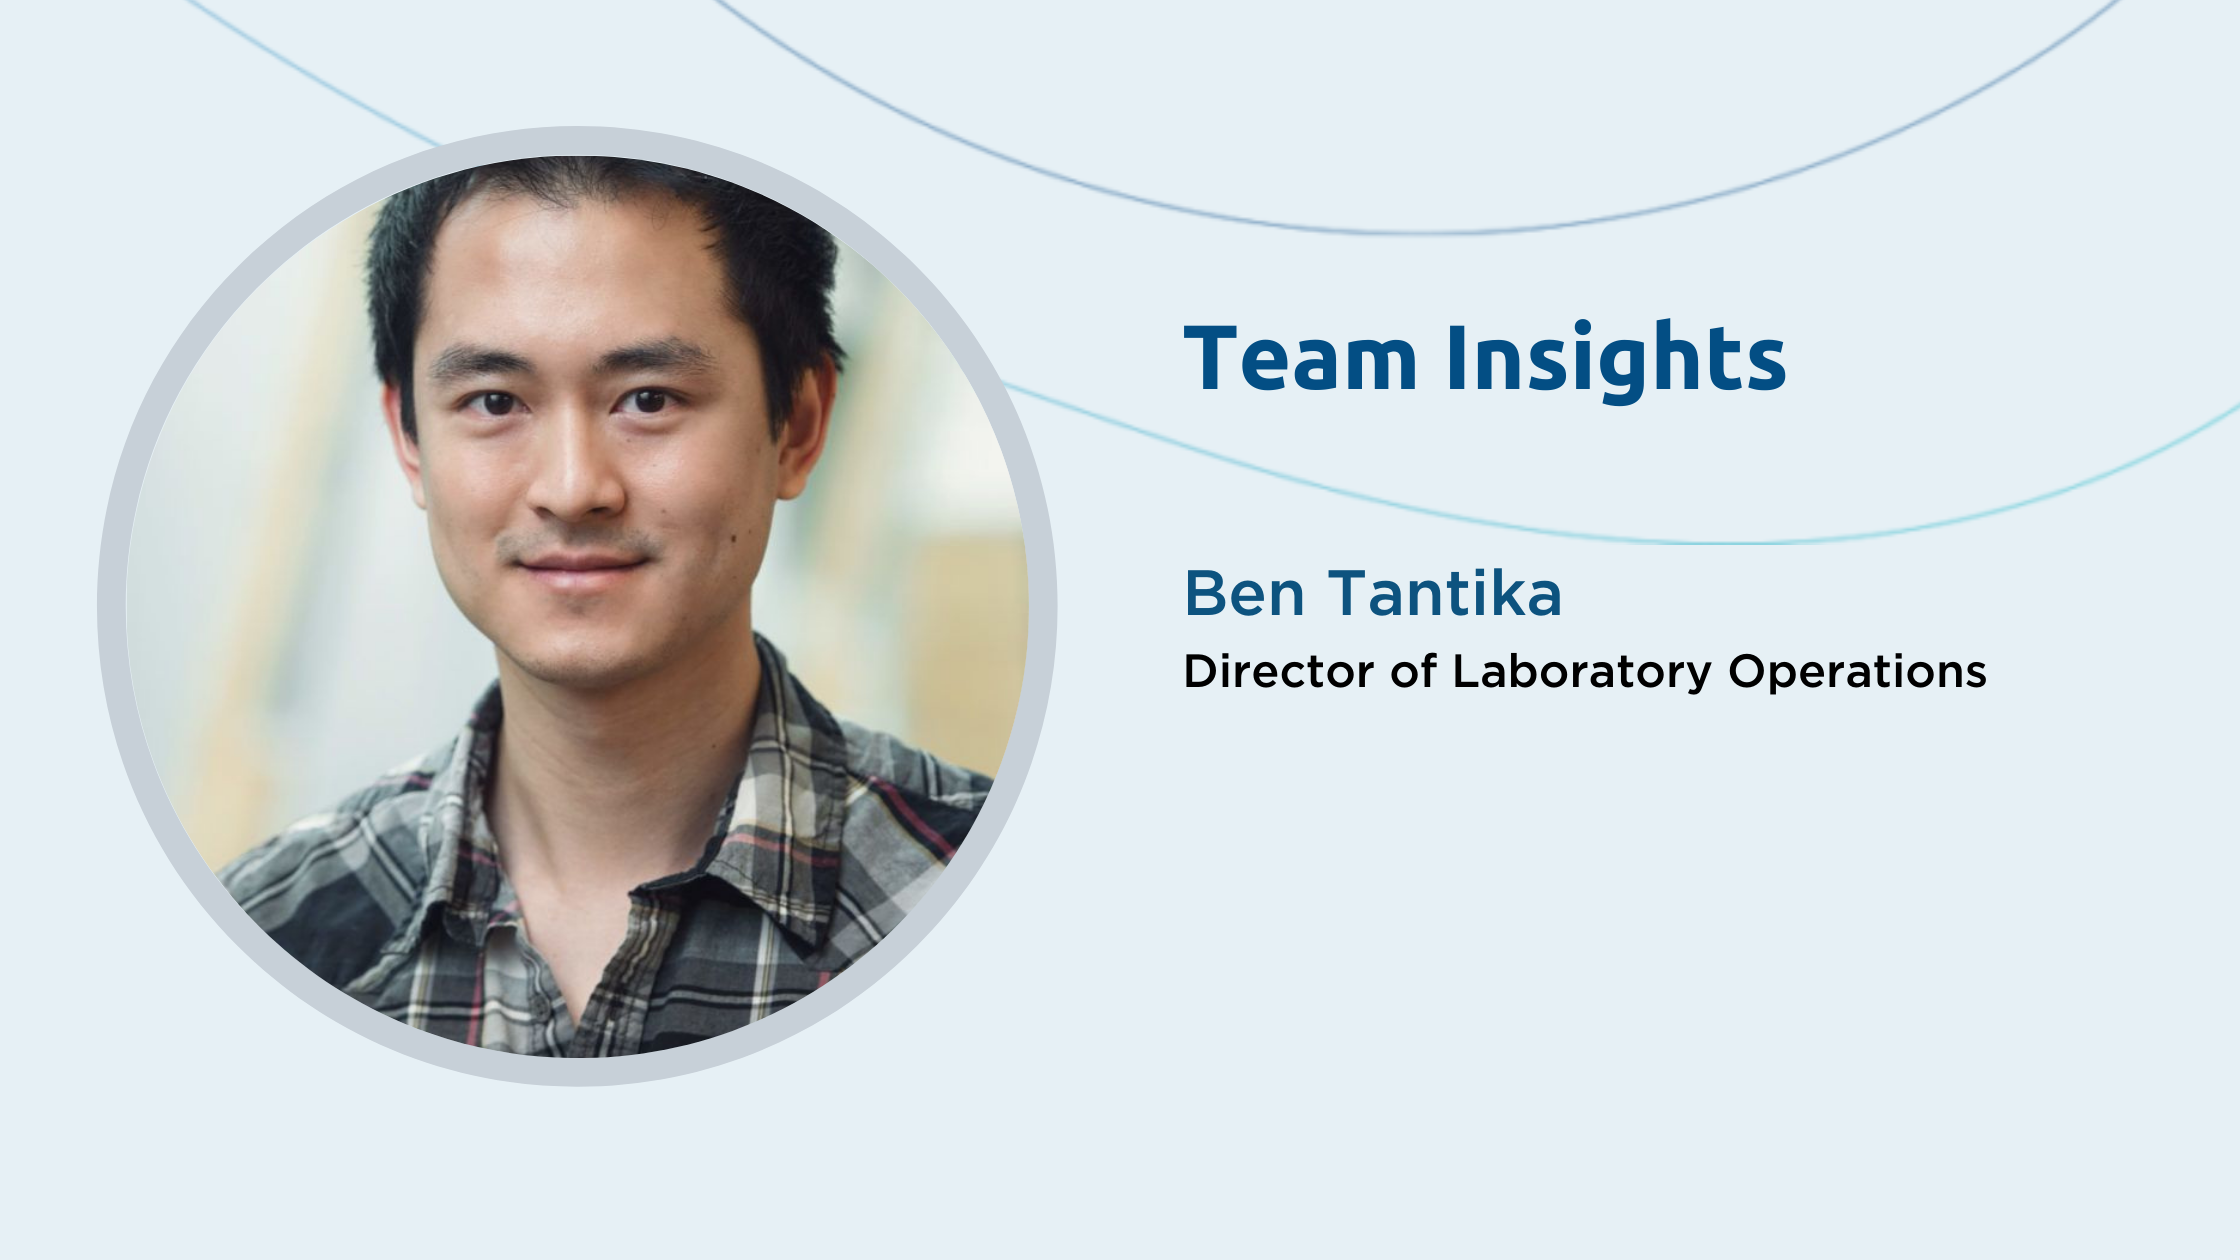 Team Insights: Ben Tantika